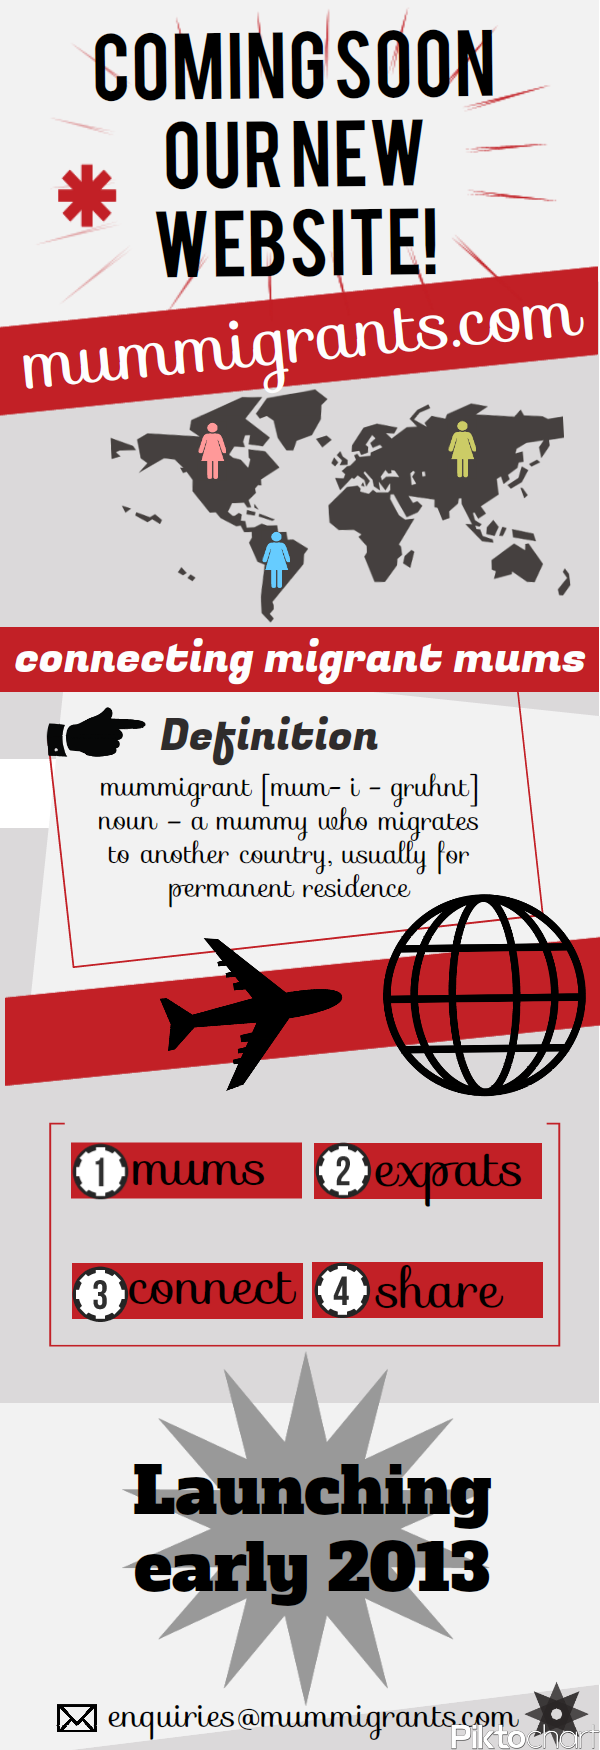 mummigrants.com